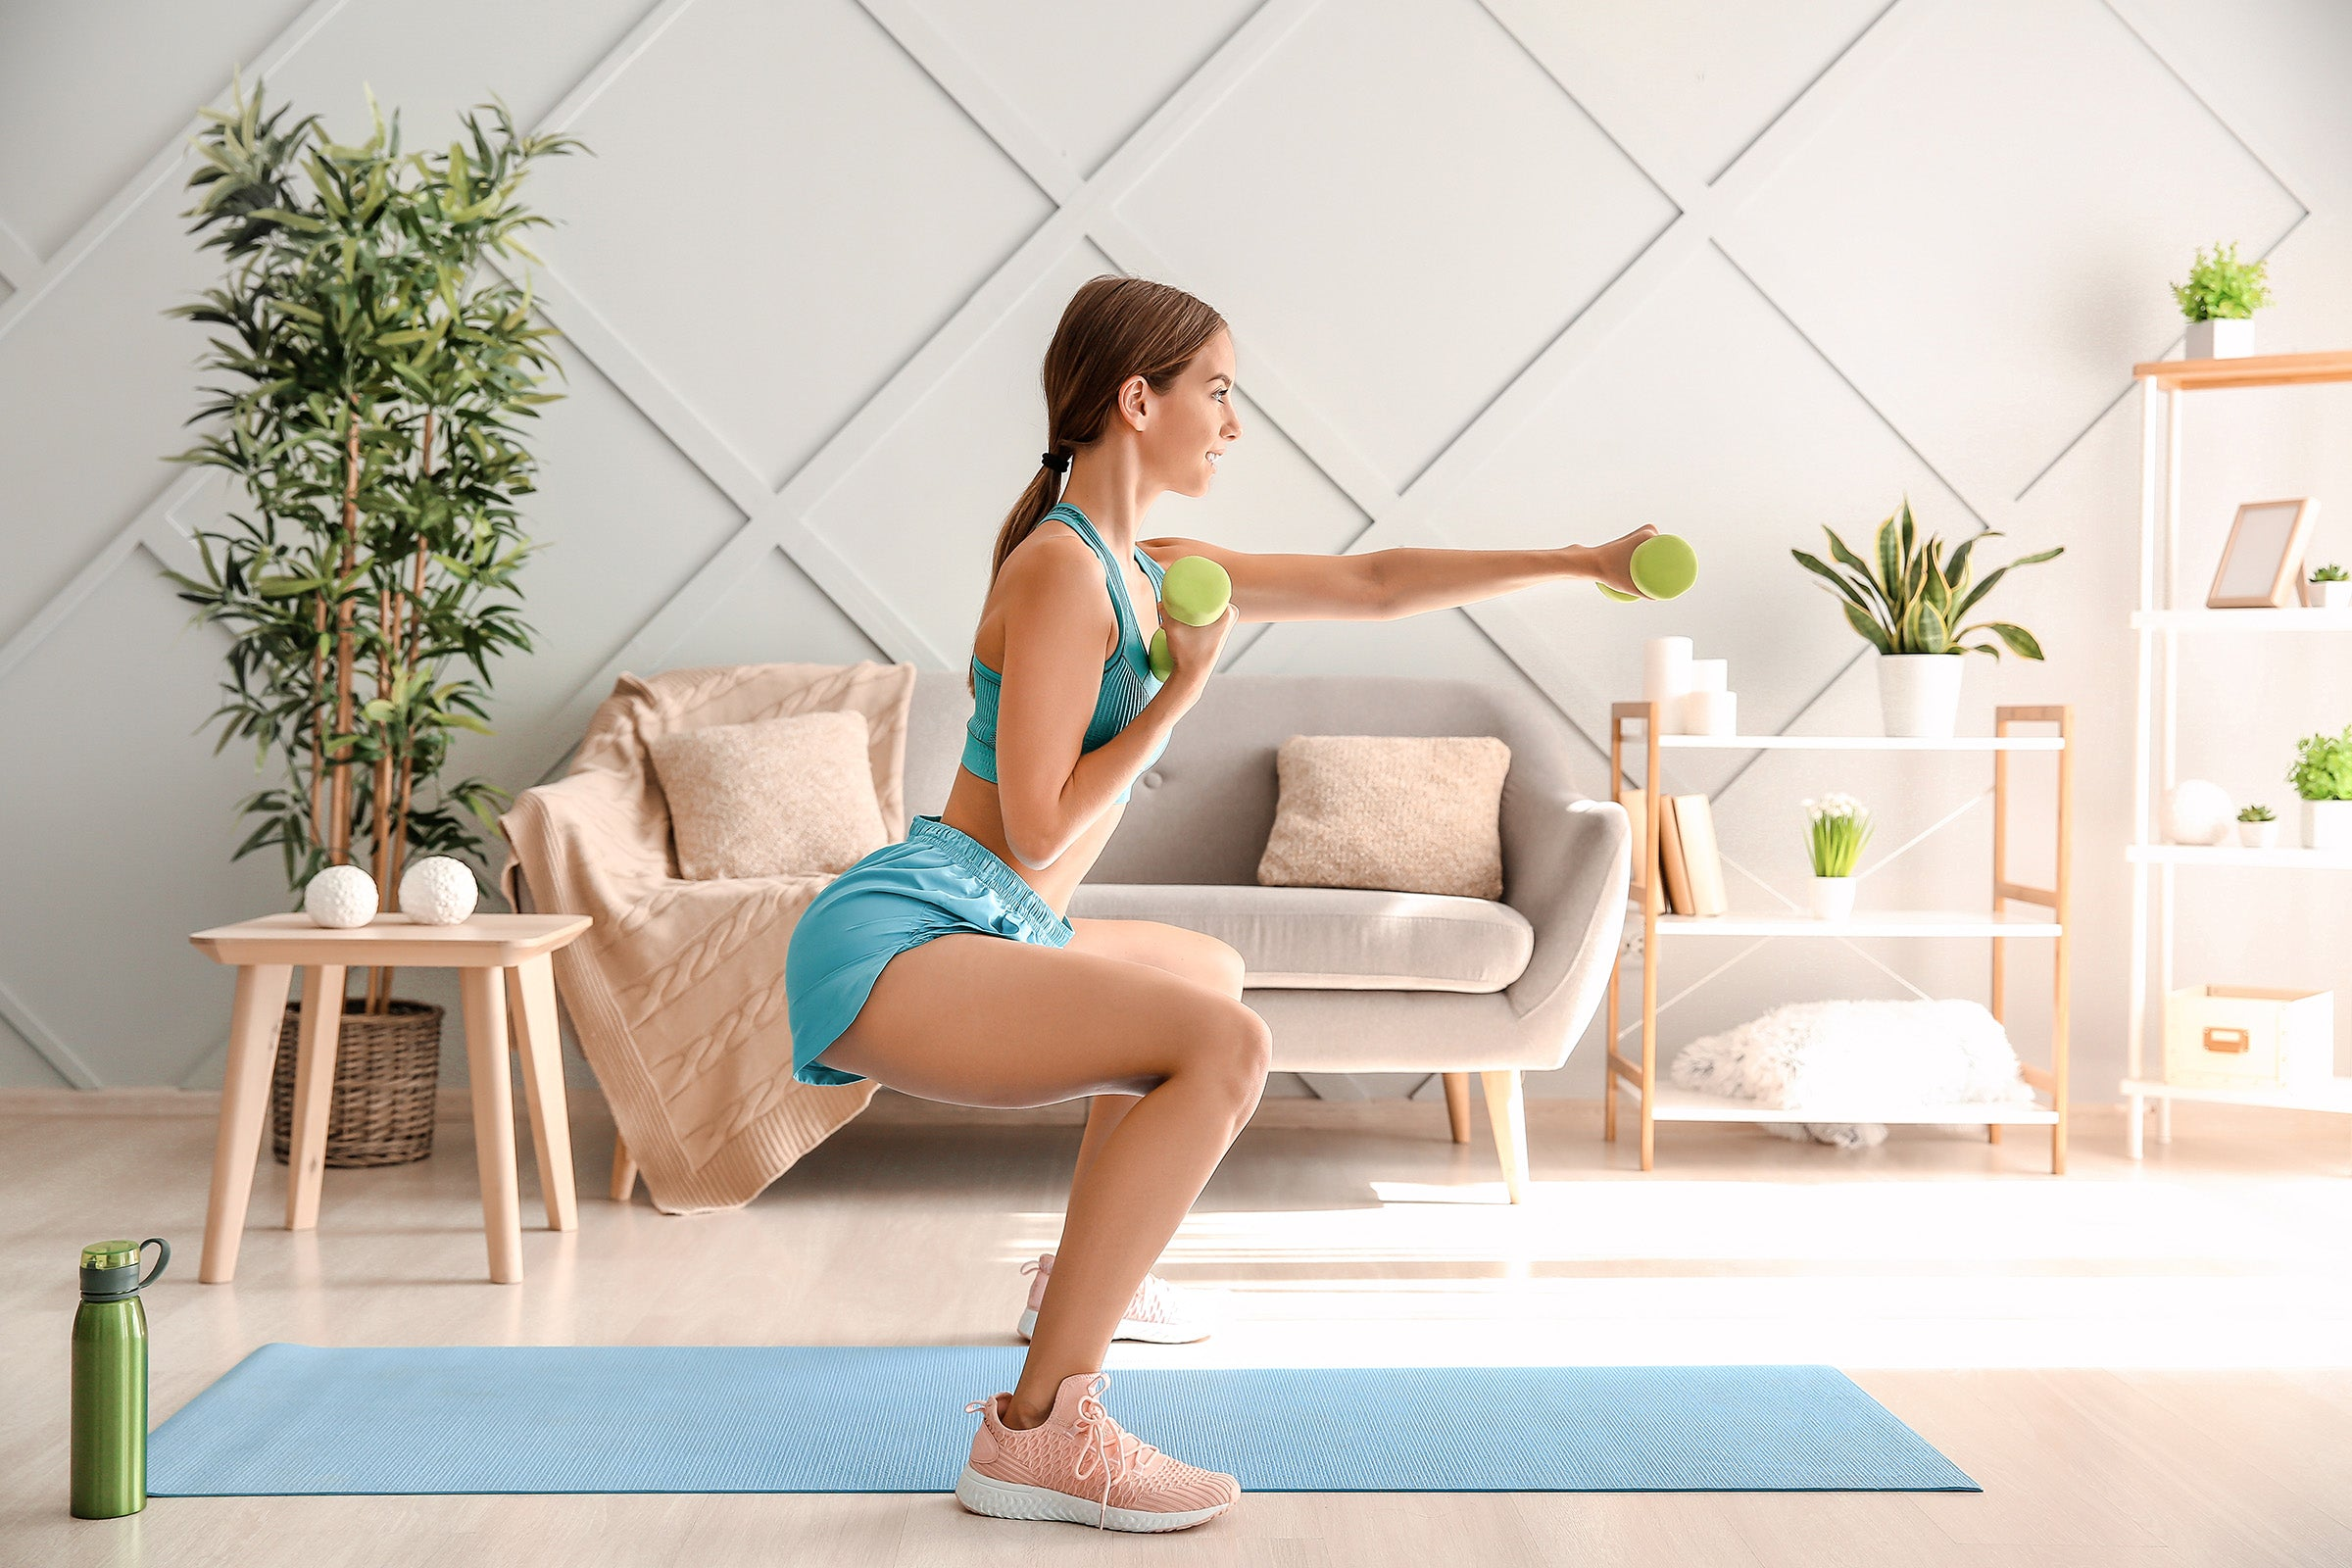 Tone up and look fit by adding strength training to your daily routines and you'll be happy with the results.